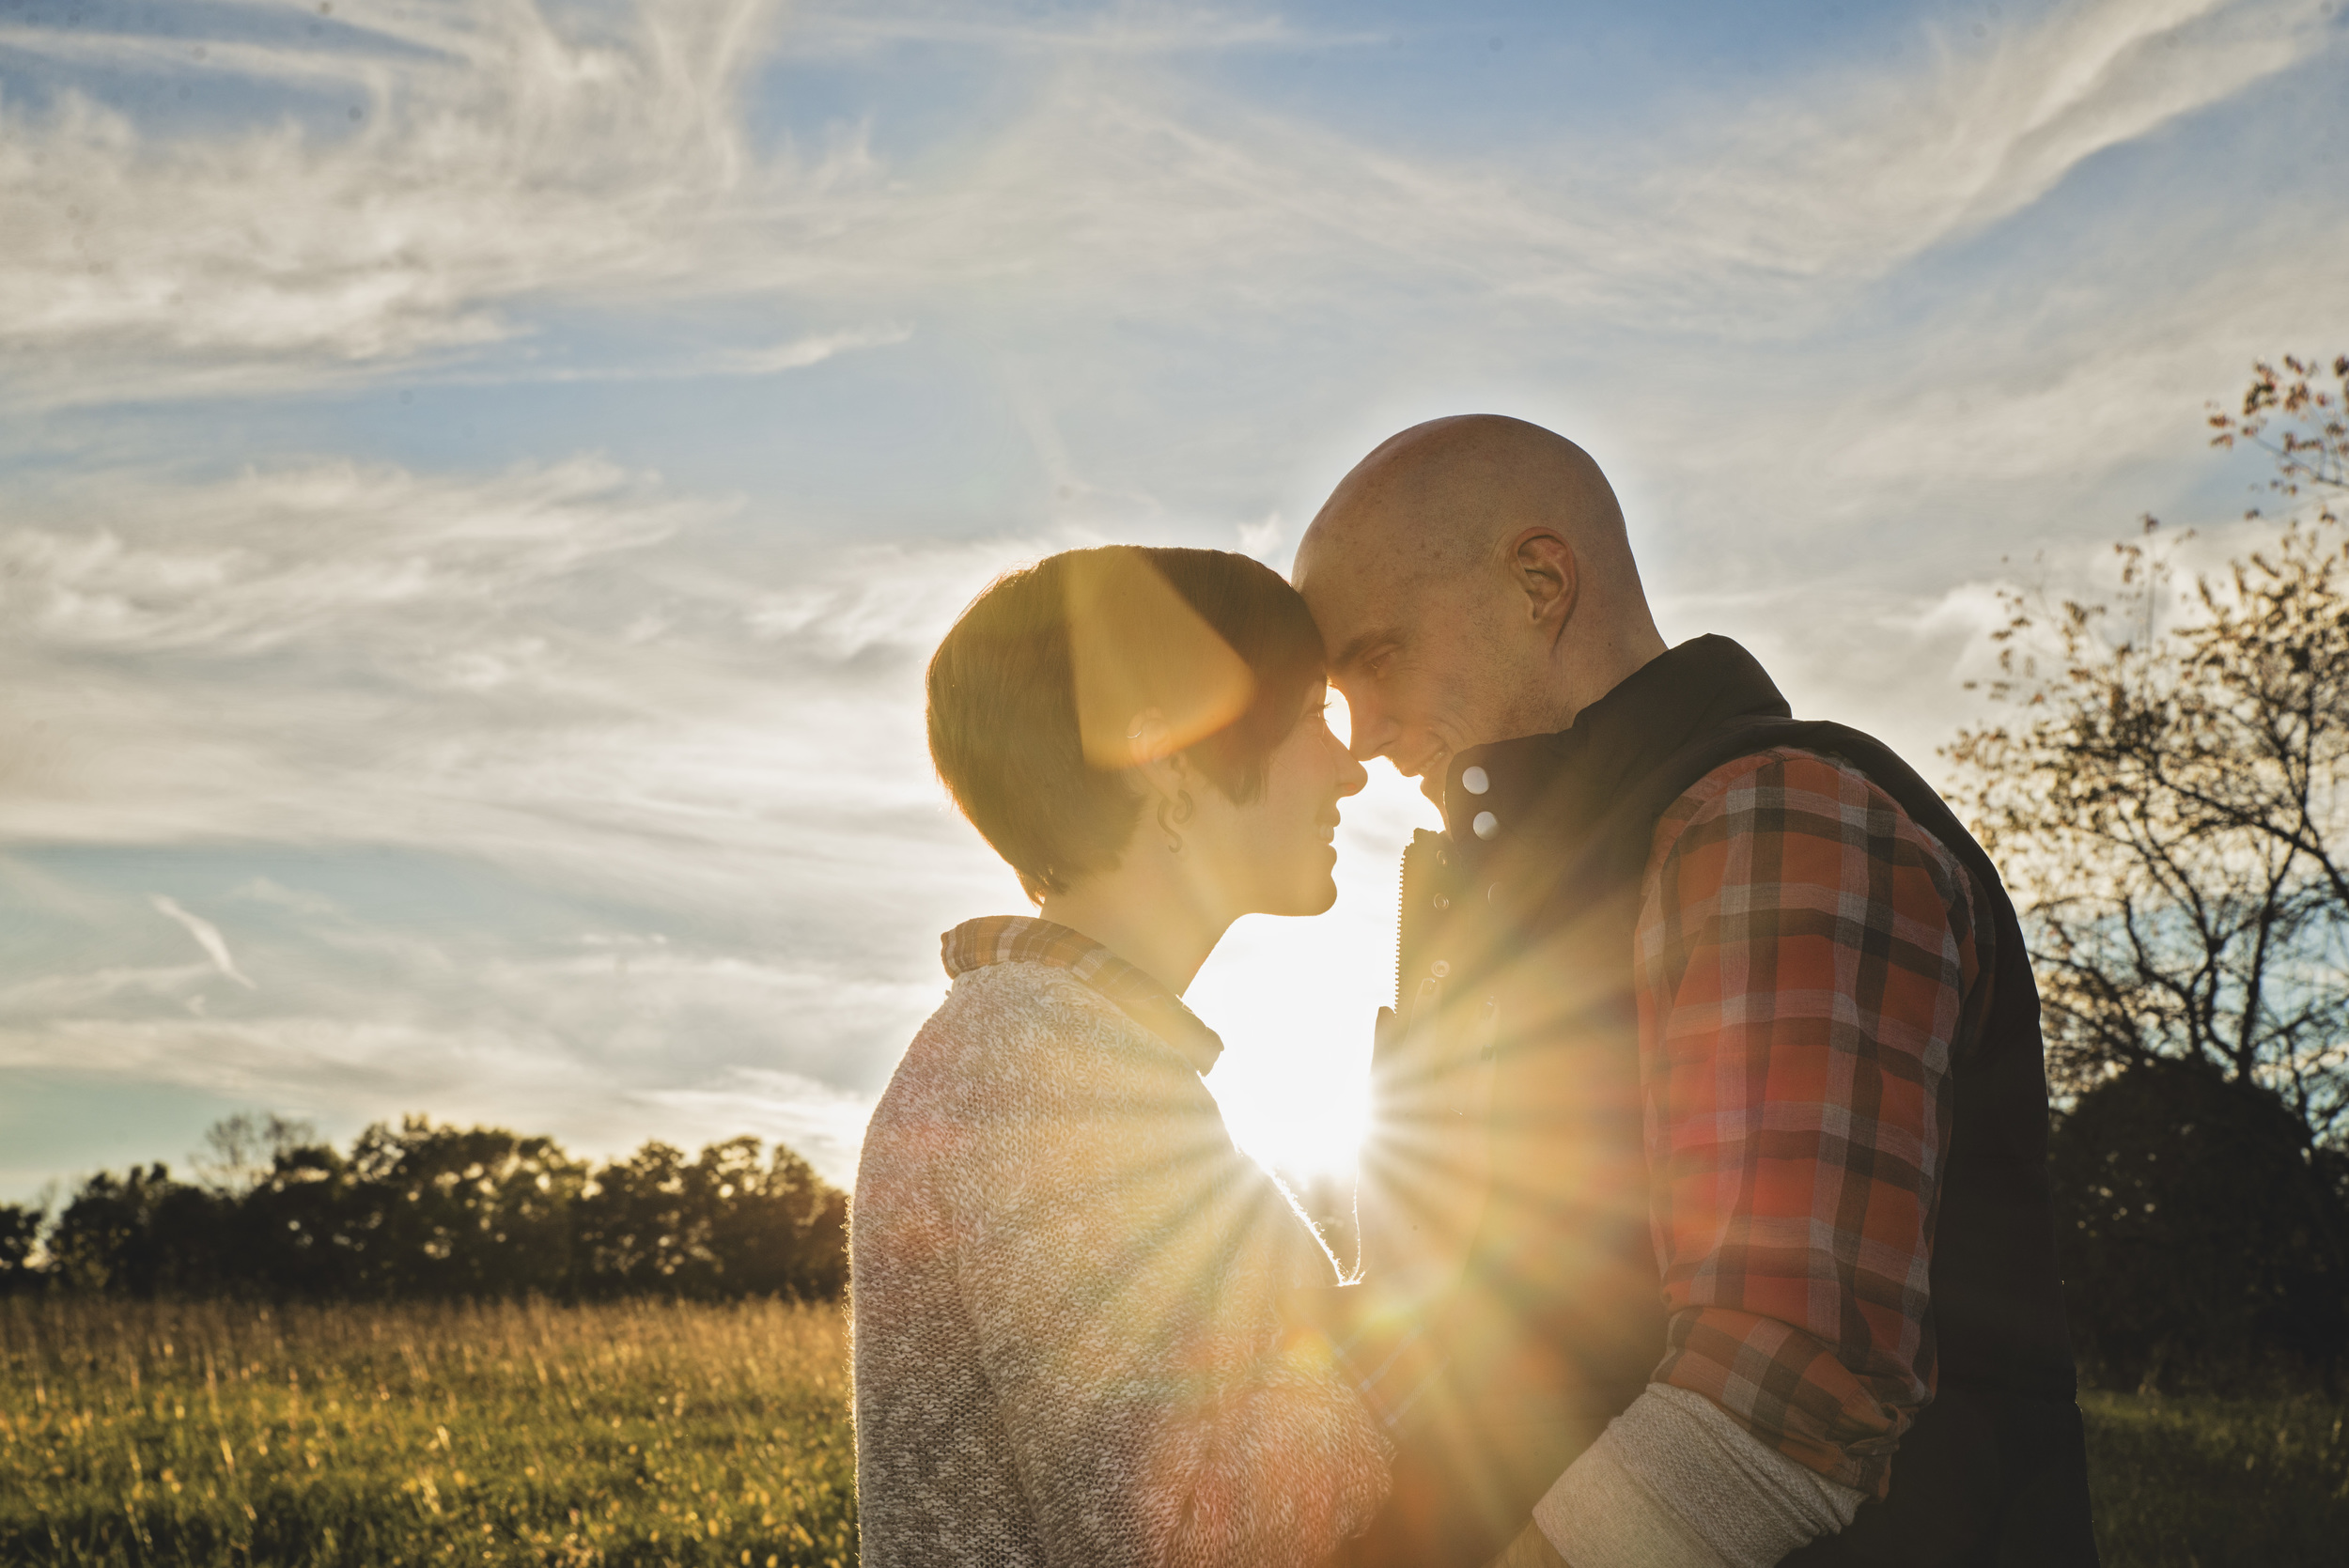 romantic_fall_field_engagement_session_lynchburg_va016.jpg